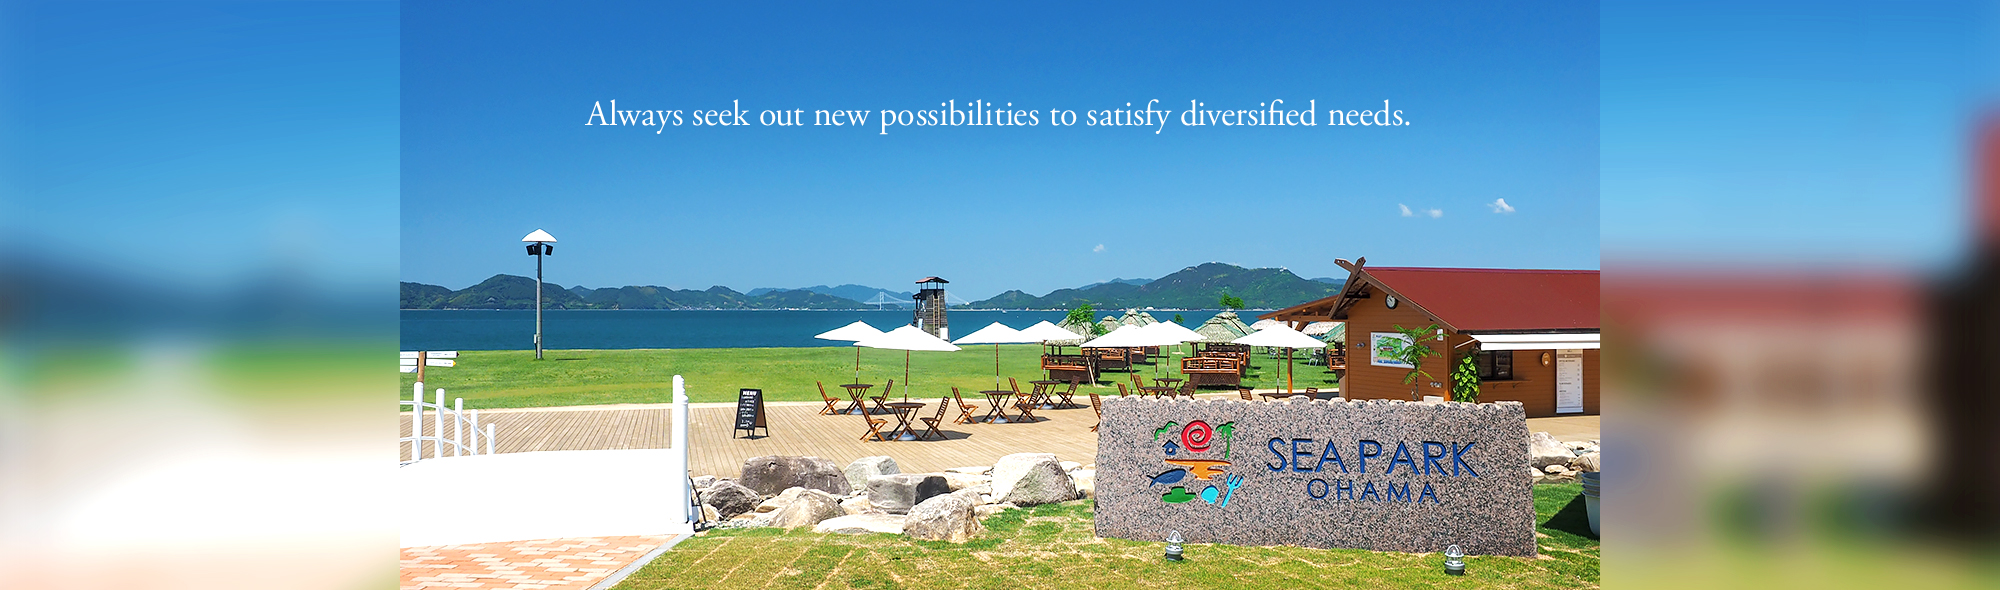 Always seek out new possibilities to satisfy diversified needs.